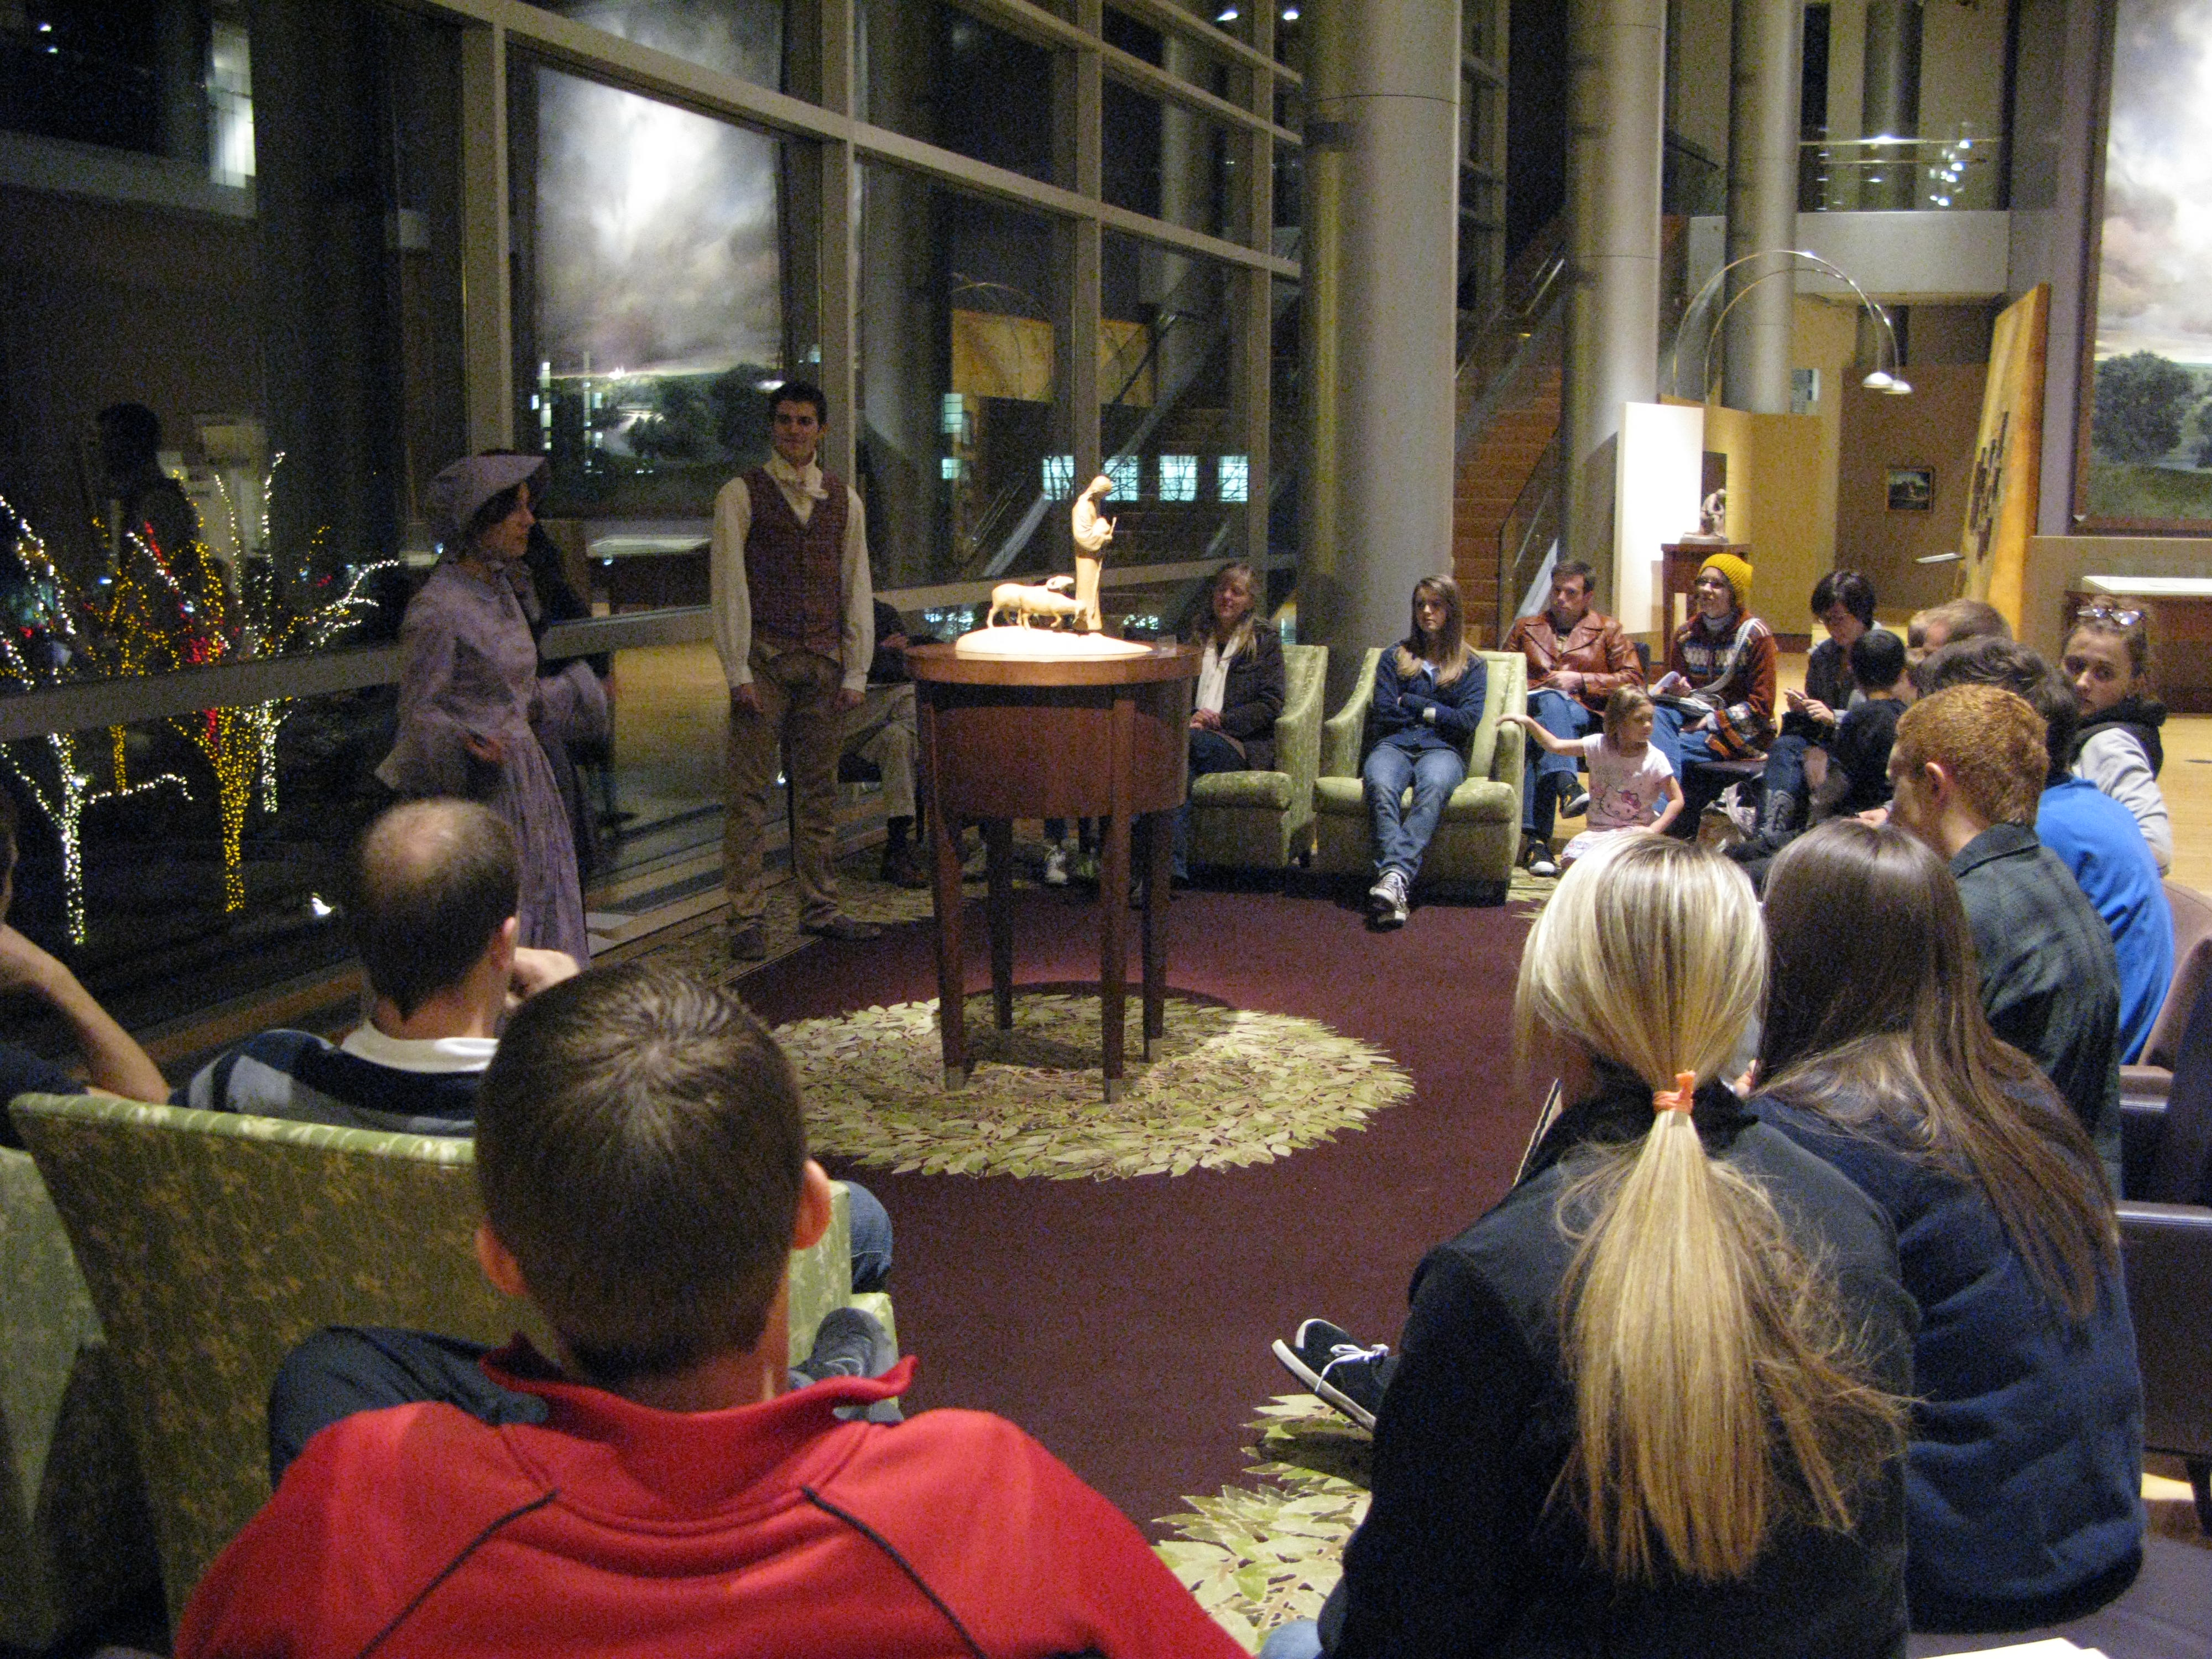 The Education in Zion gallery's most popular event of the year, Christmas in Nauvoo, involves the stories of latter-day saints and prophets during the Christmas season in Nauvoo. (Photo courtesy of Joe Moxon.)